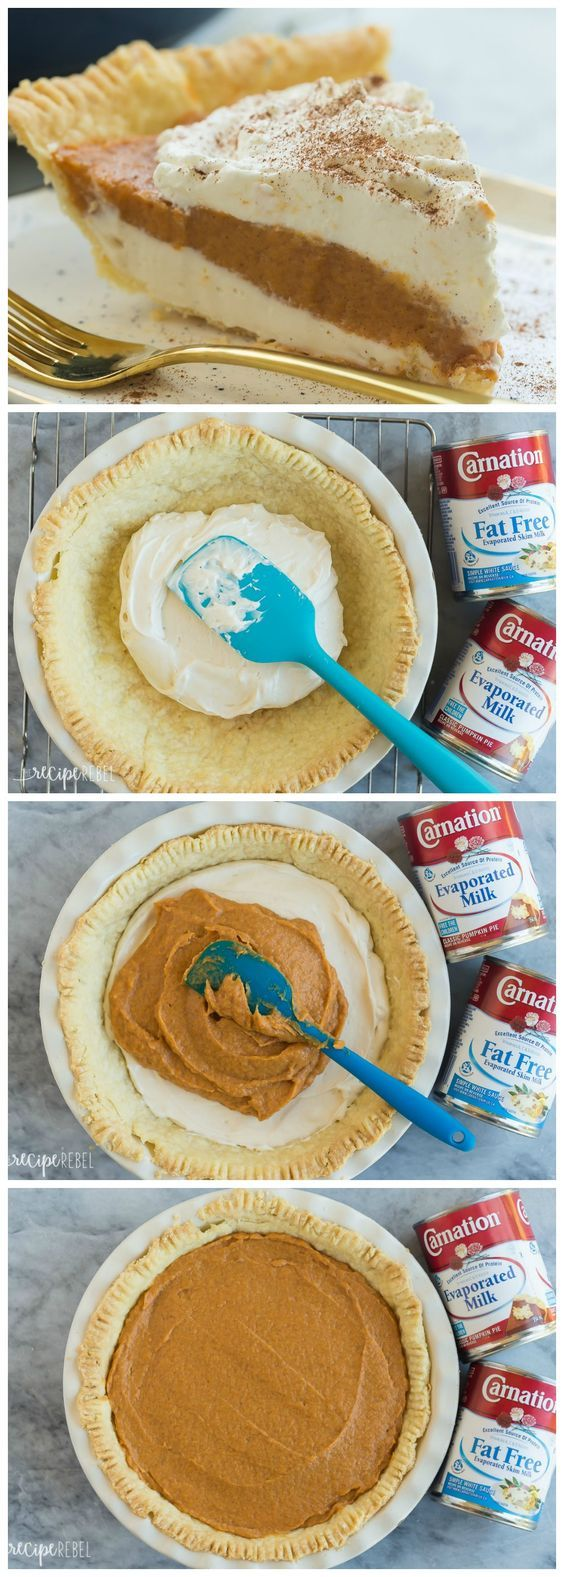 The ULTIMATE Pumpkin Pie made with Carnation Evaporated Milk! This no-bake is complete with a homemade pie crust, creamy cheesecake layer and homemade pumpkin pudding on top!